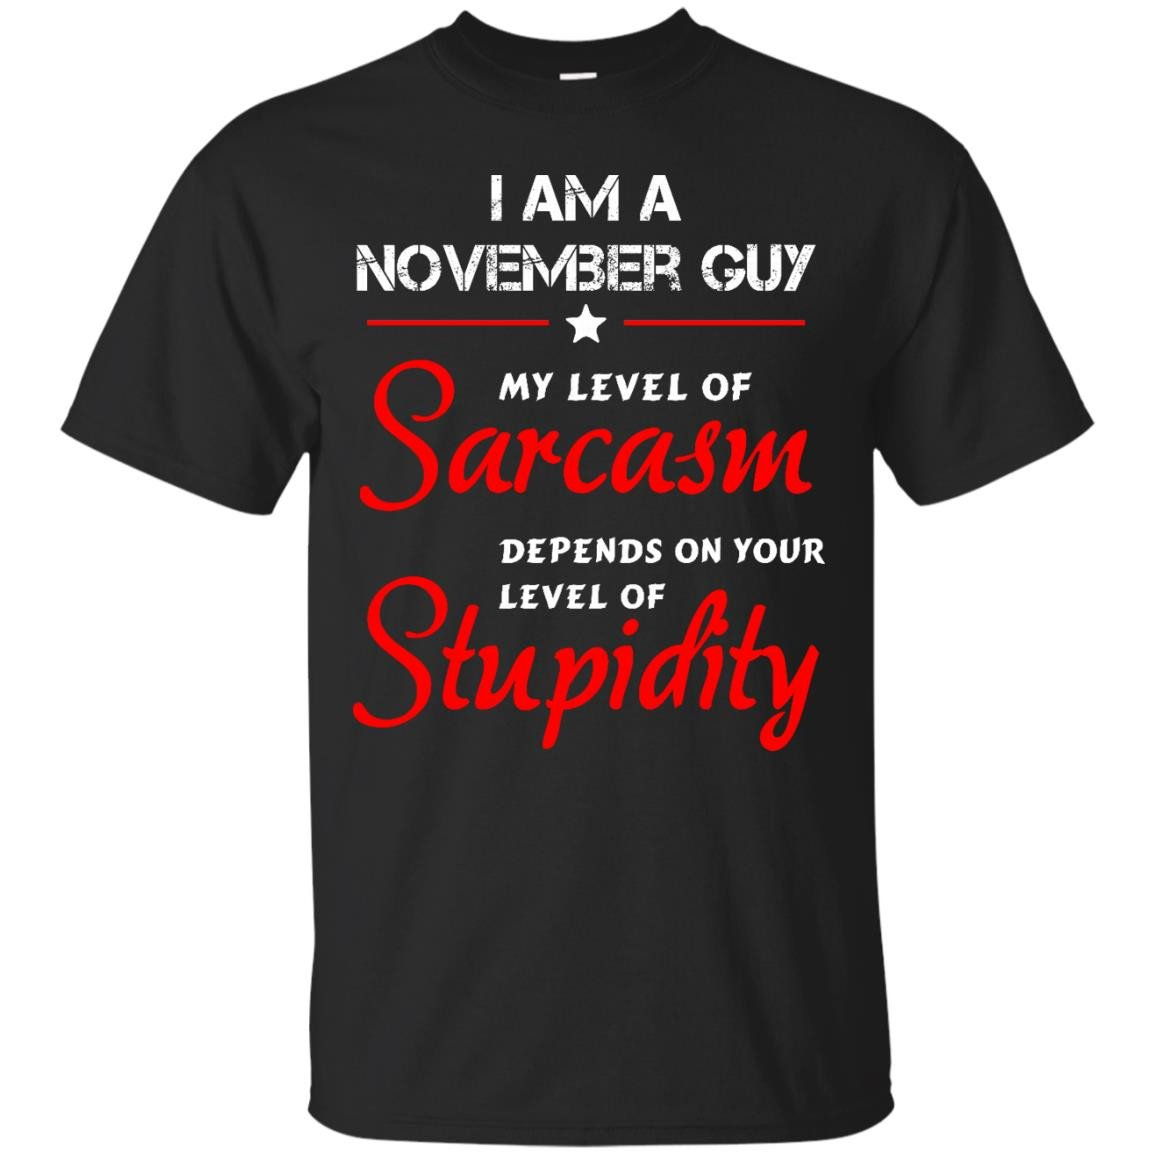 I am an October guy shirts my level of sarcasm depends on your level of stupidity T shirt,tank top,long sleeve & Hoodies